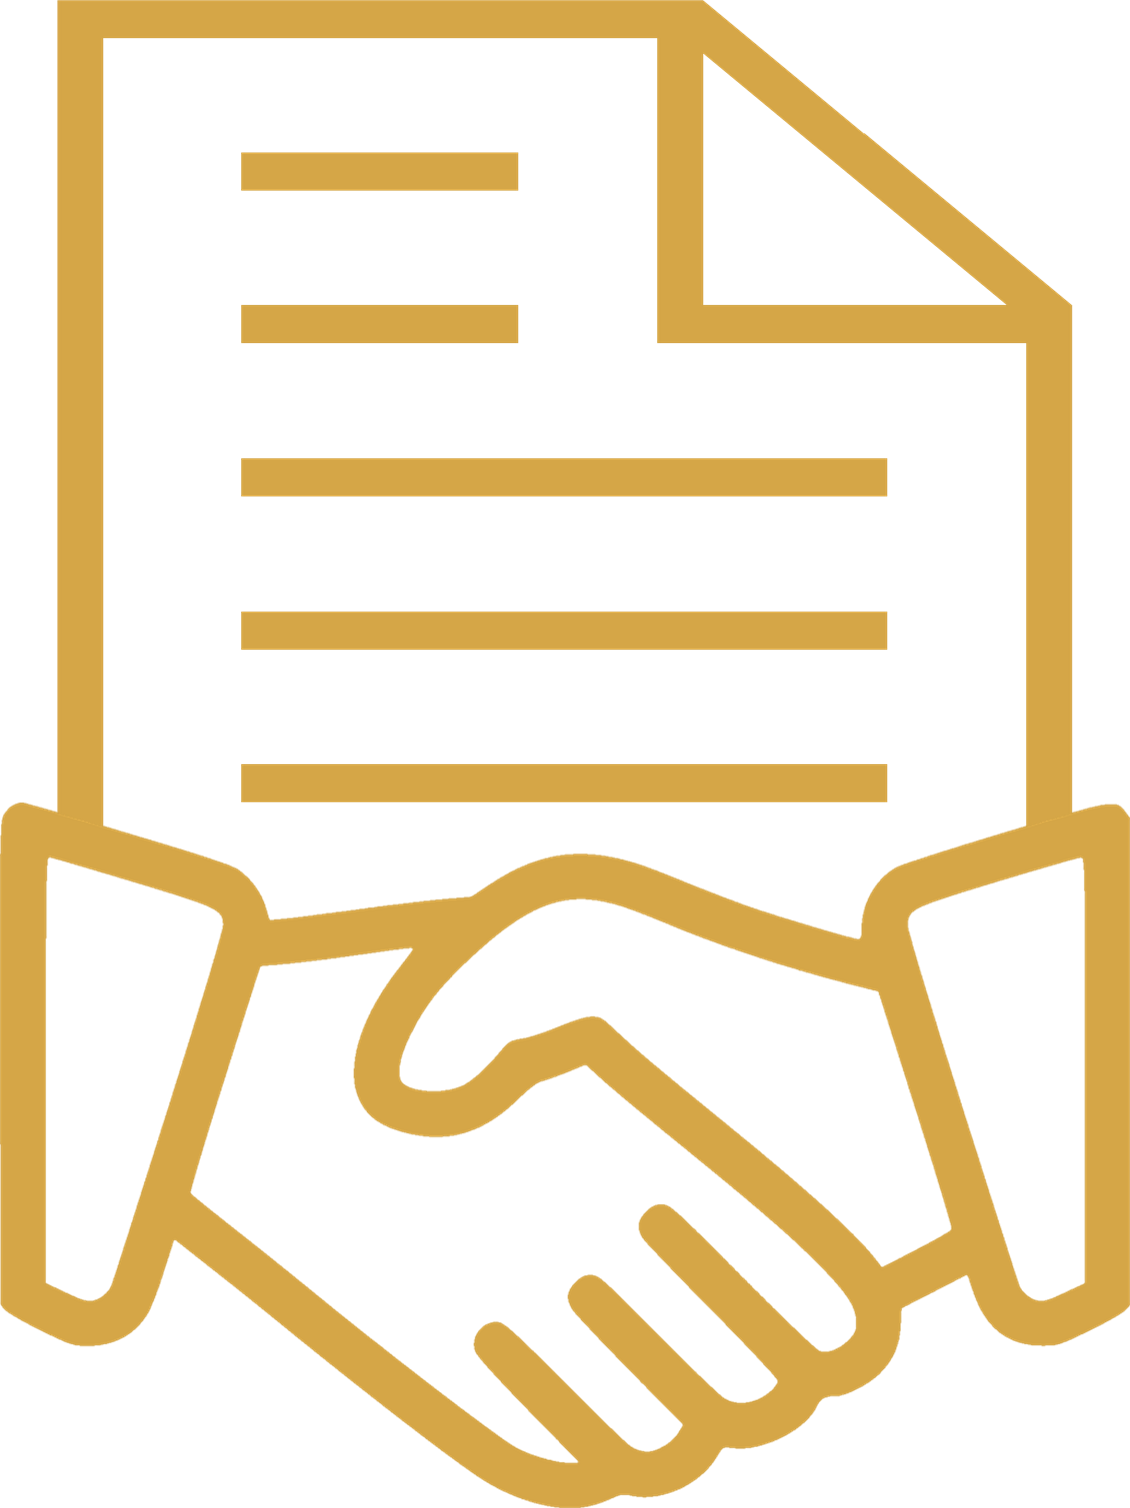 Agreement icon with shaking hands. Review Offers, Negotiate Details, and Close the house Sale